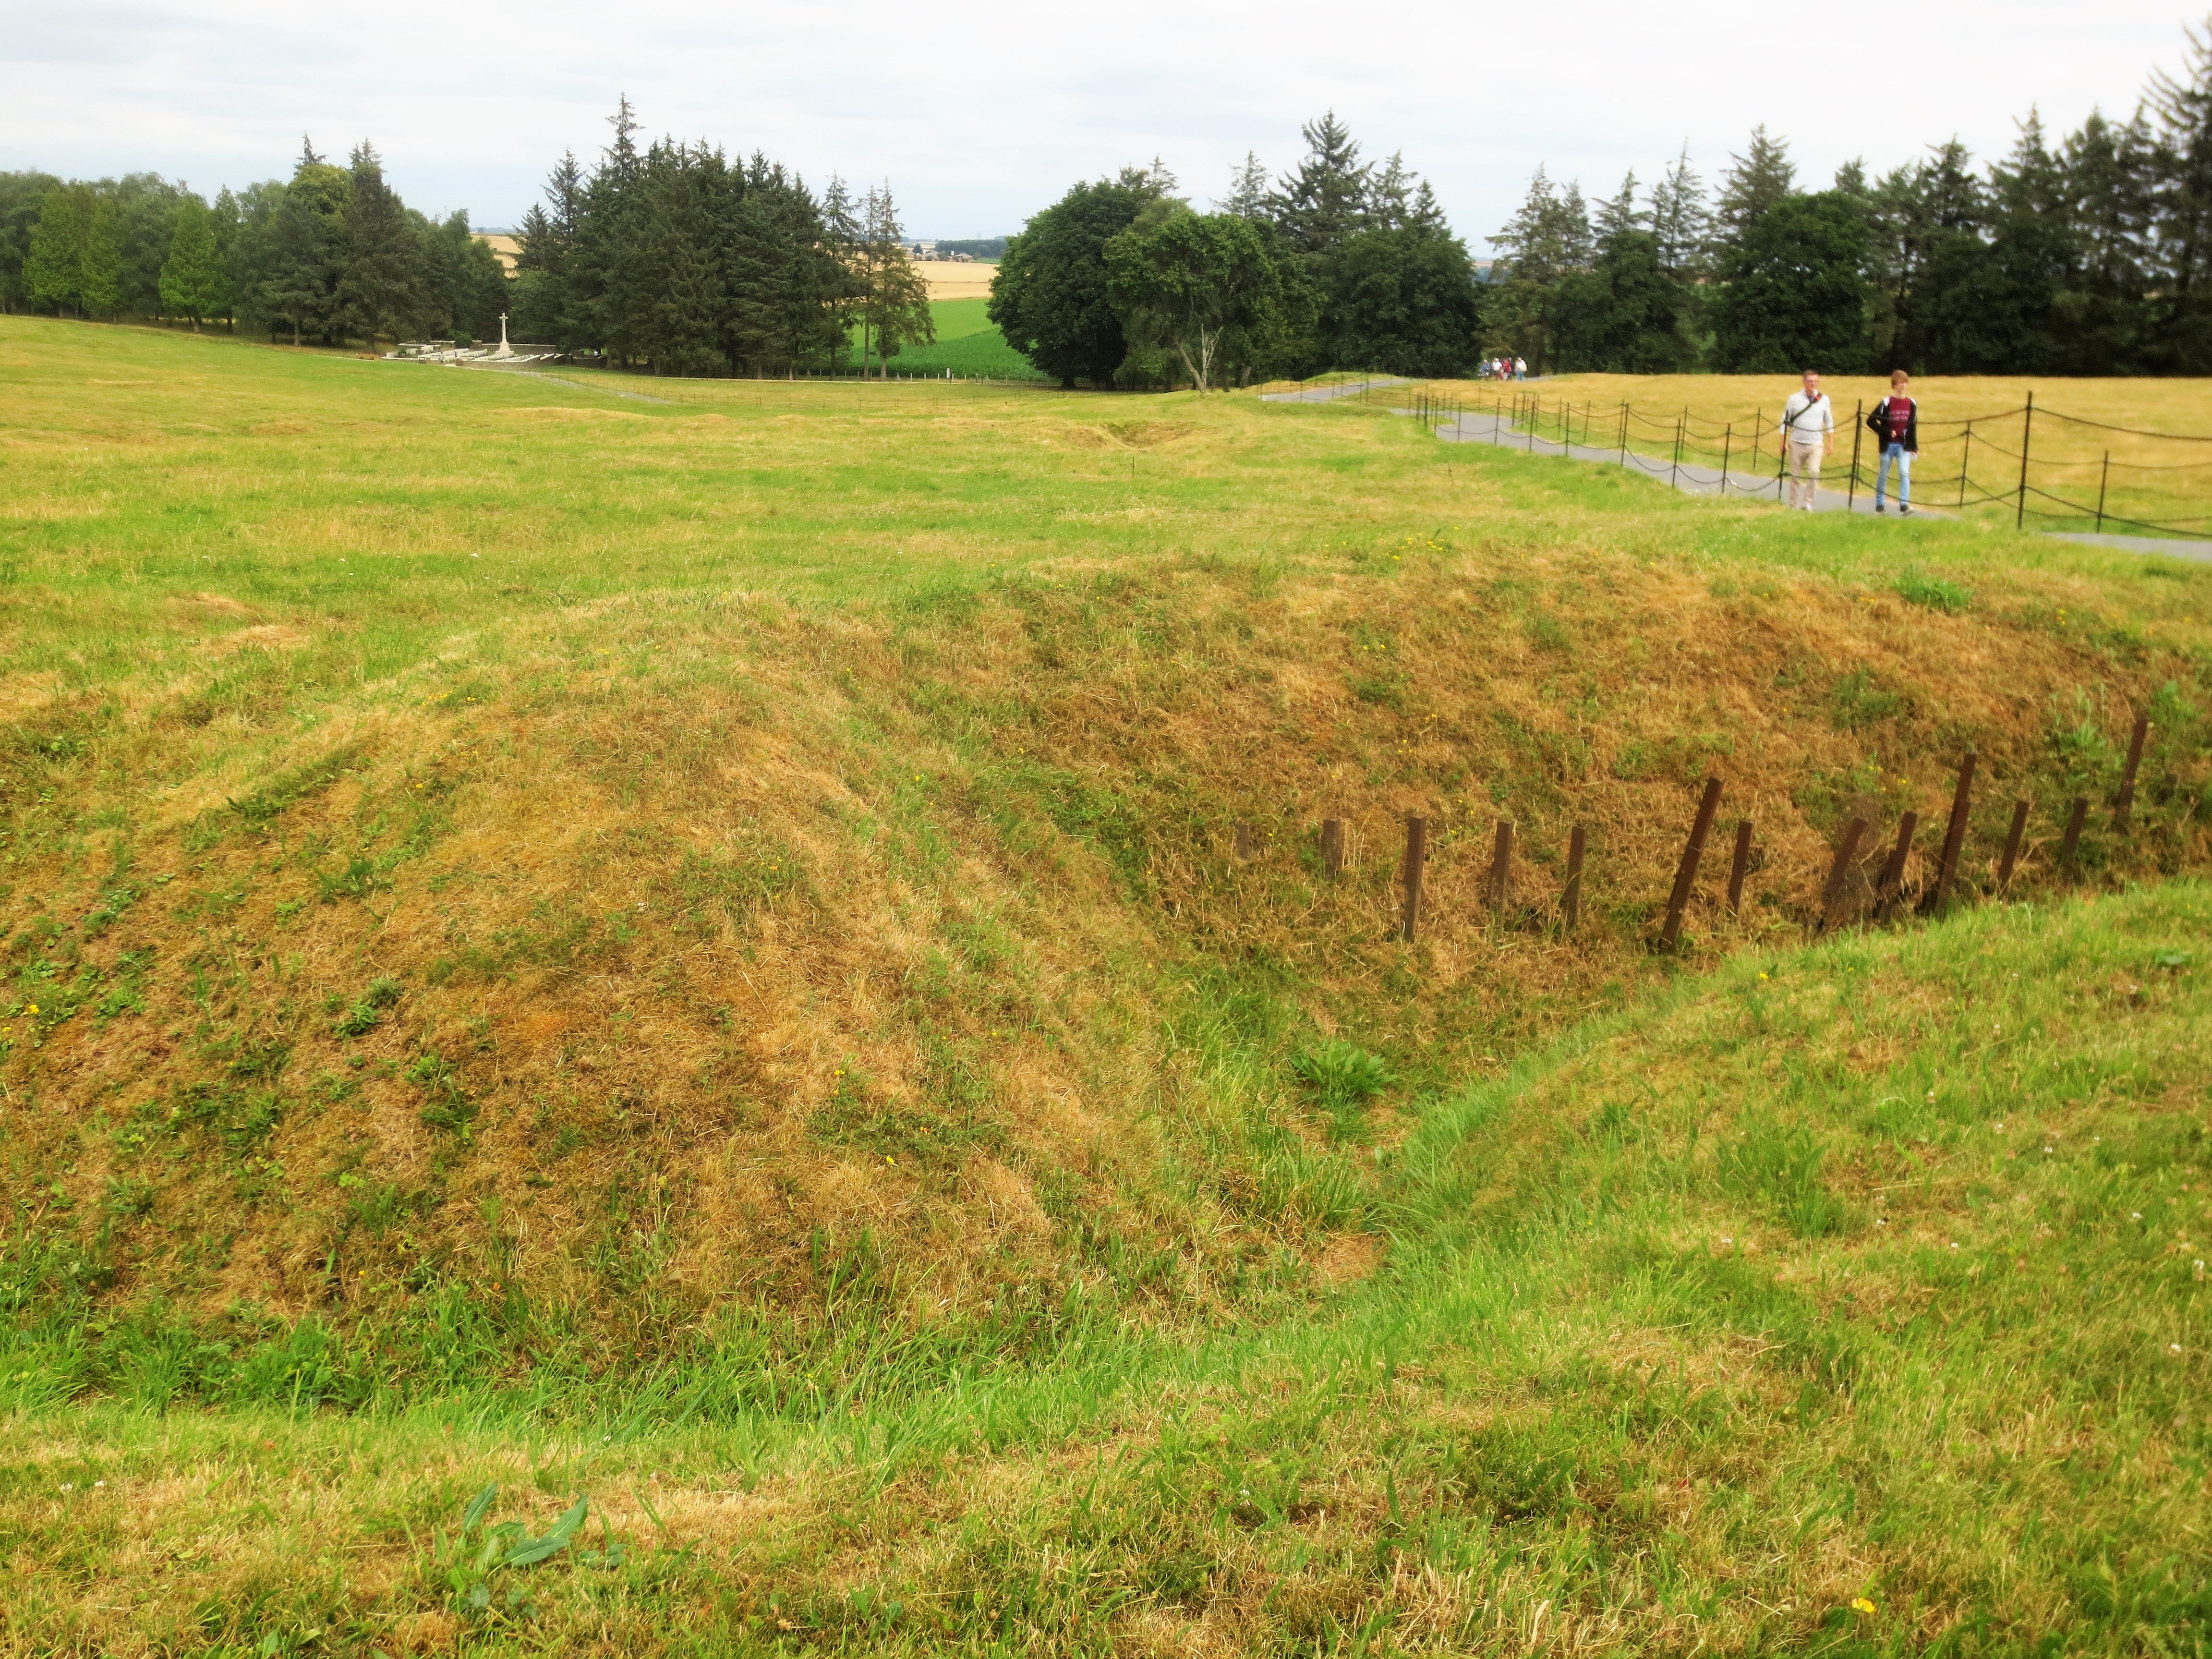 Trenches are still visible at the Somme battlefield in France, where there were more than 1 million casualties in 1916.